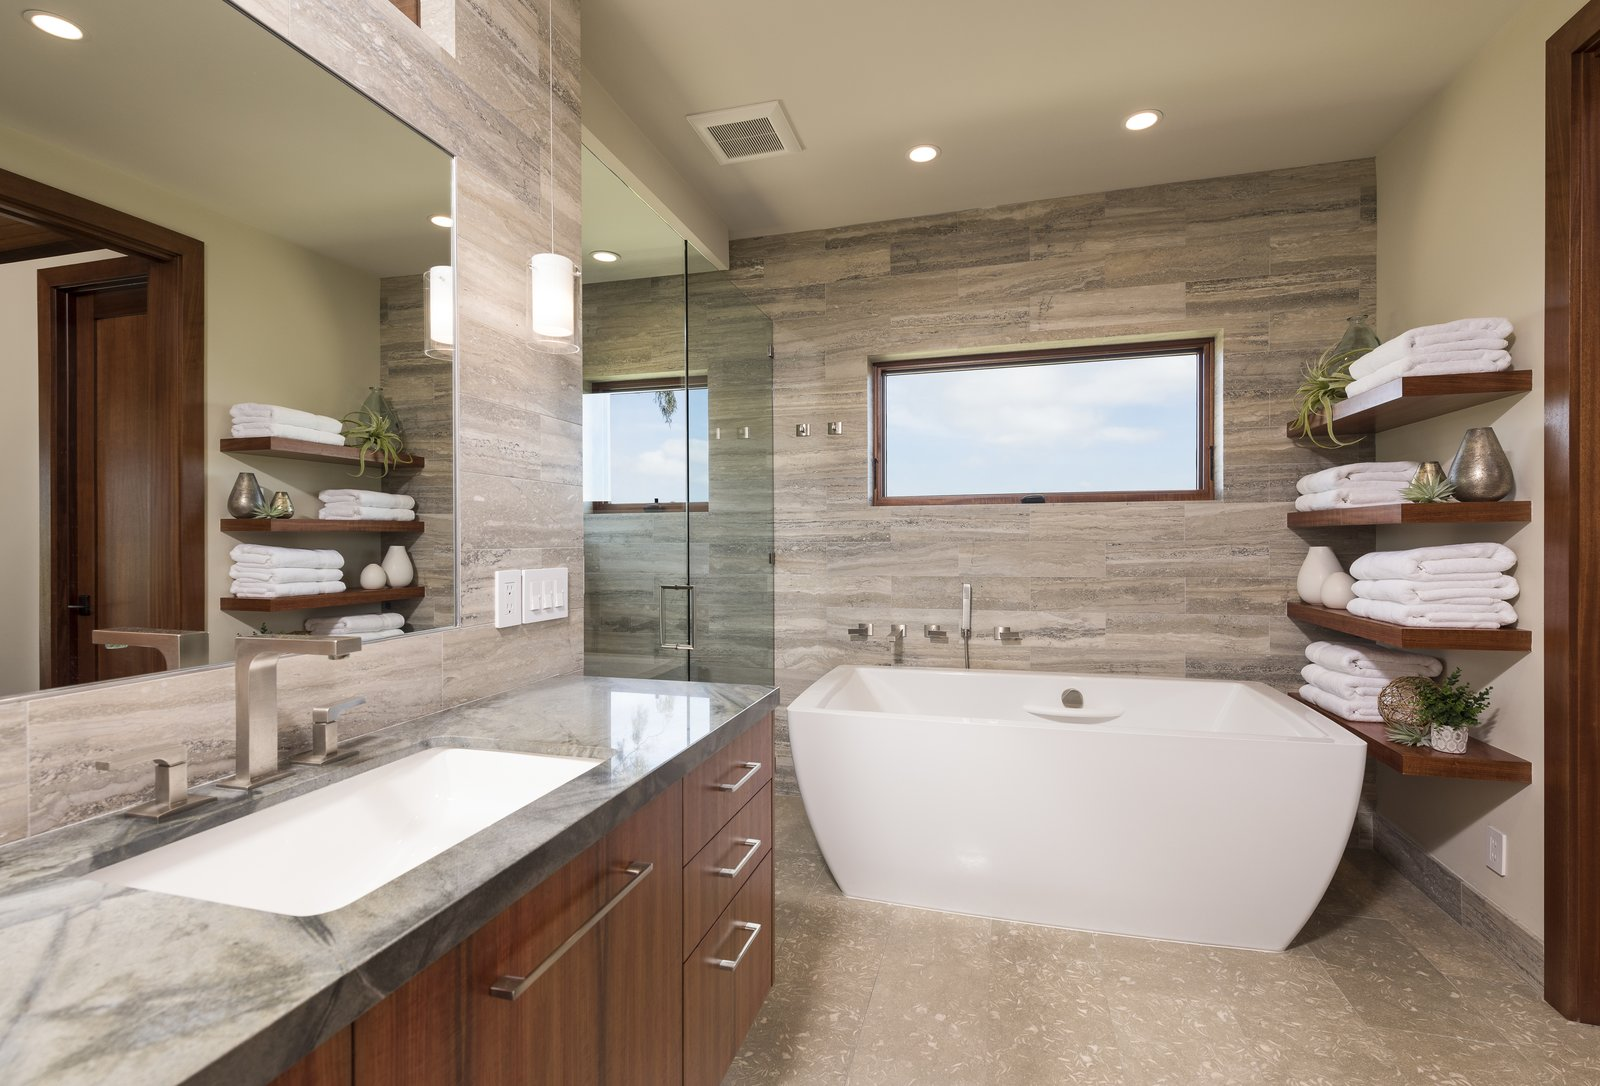 Bath, Granite, Undermount, Freestanding, Limestone, Open, Recessed, and Stone Tile Master Bathroom  Best Bath Limestone Recessed Photos from La Jolla Modern